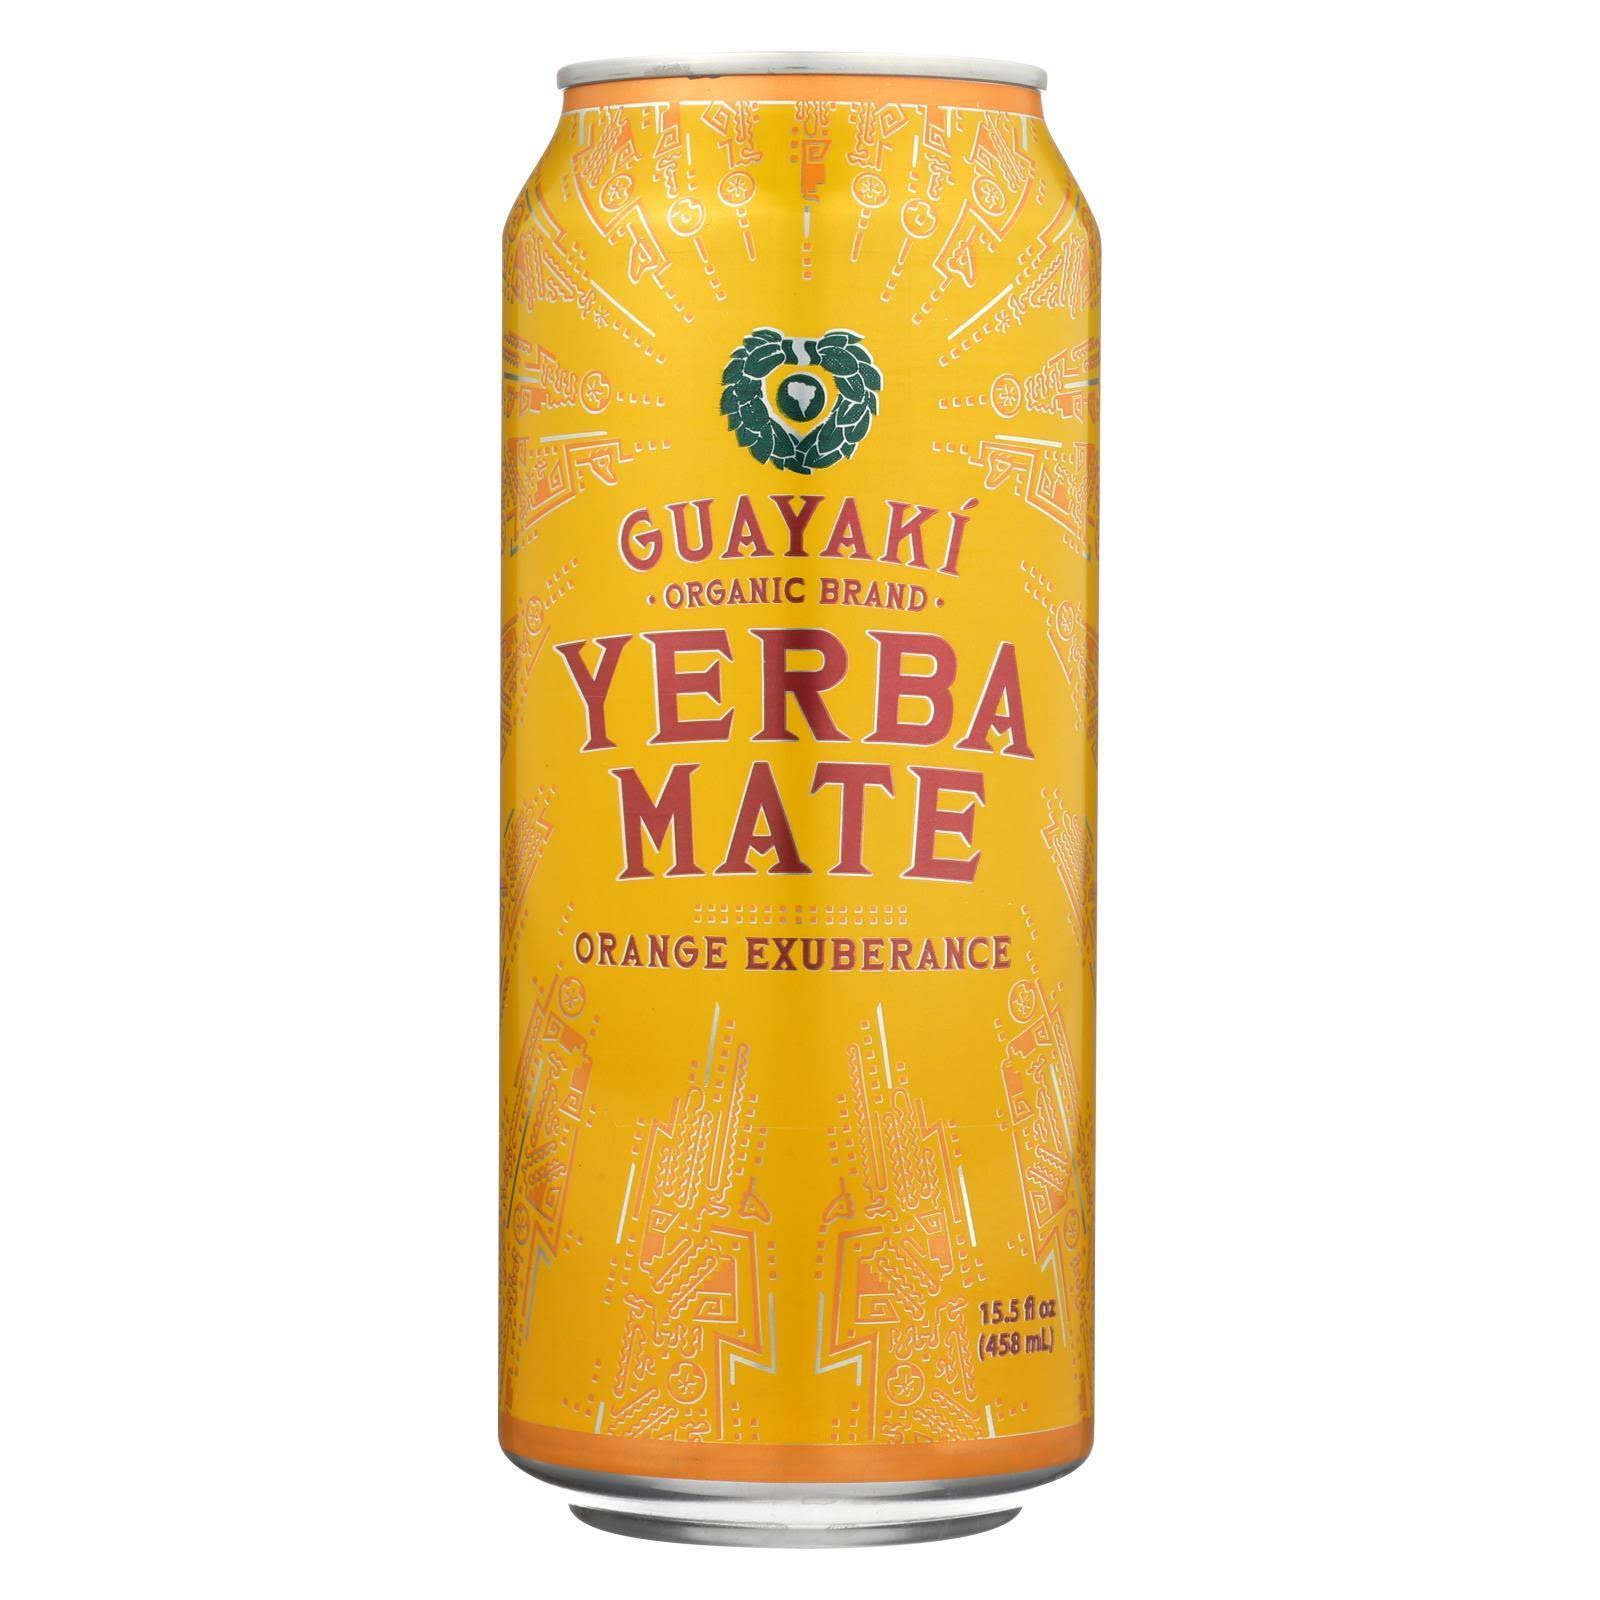 Guayaki Organic Yerba Mate - Orange Exuberance, 15.5oz